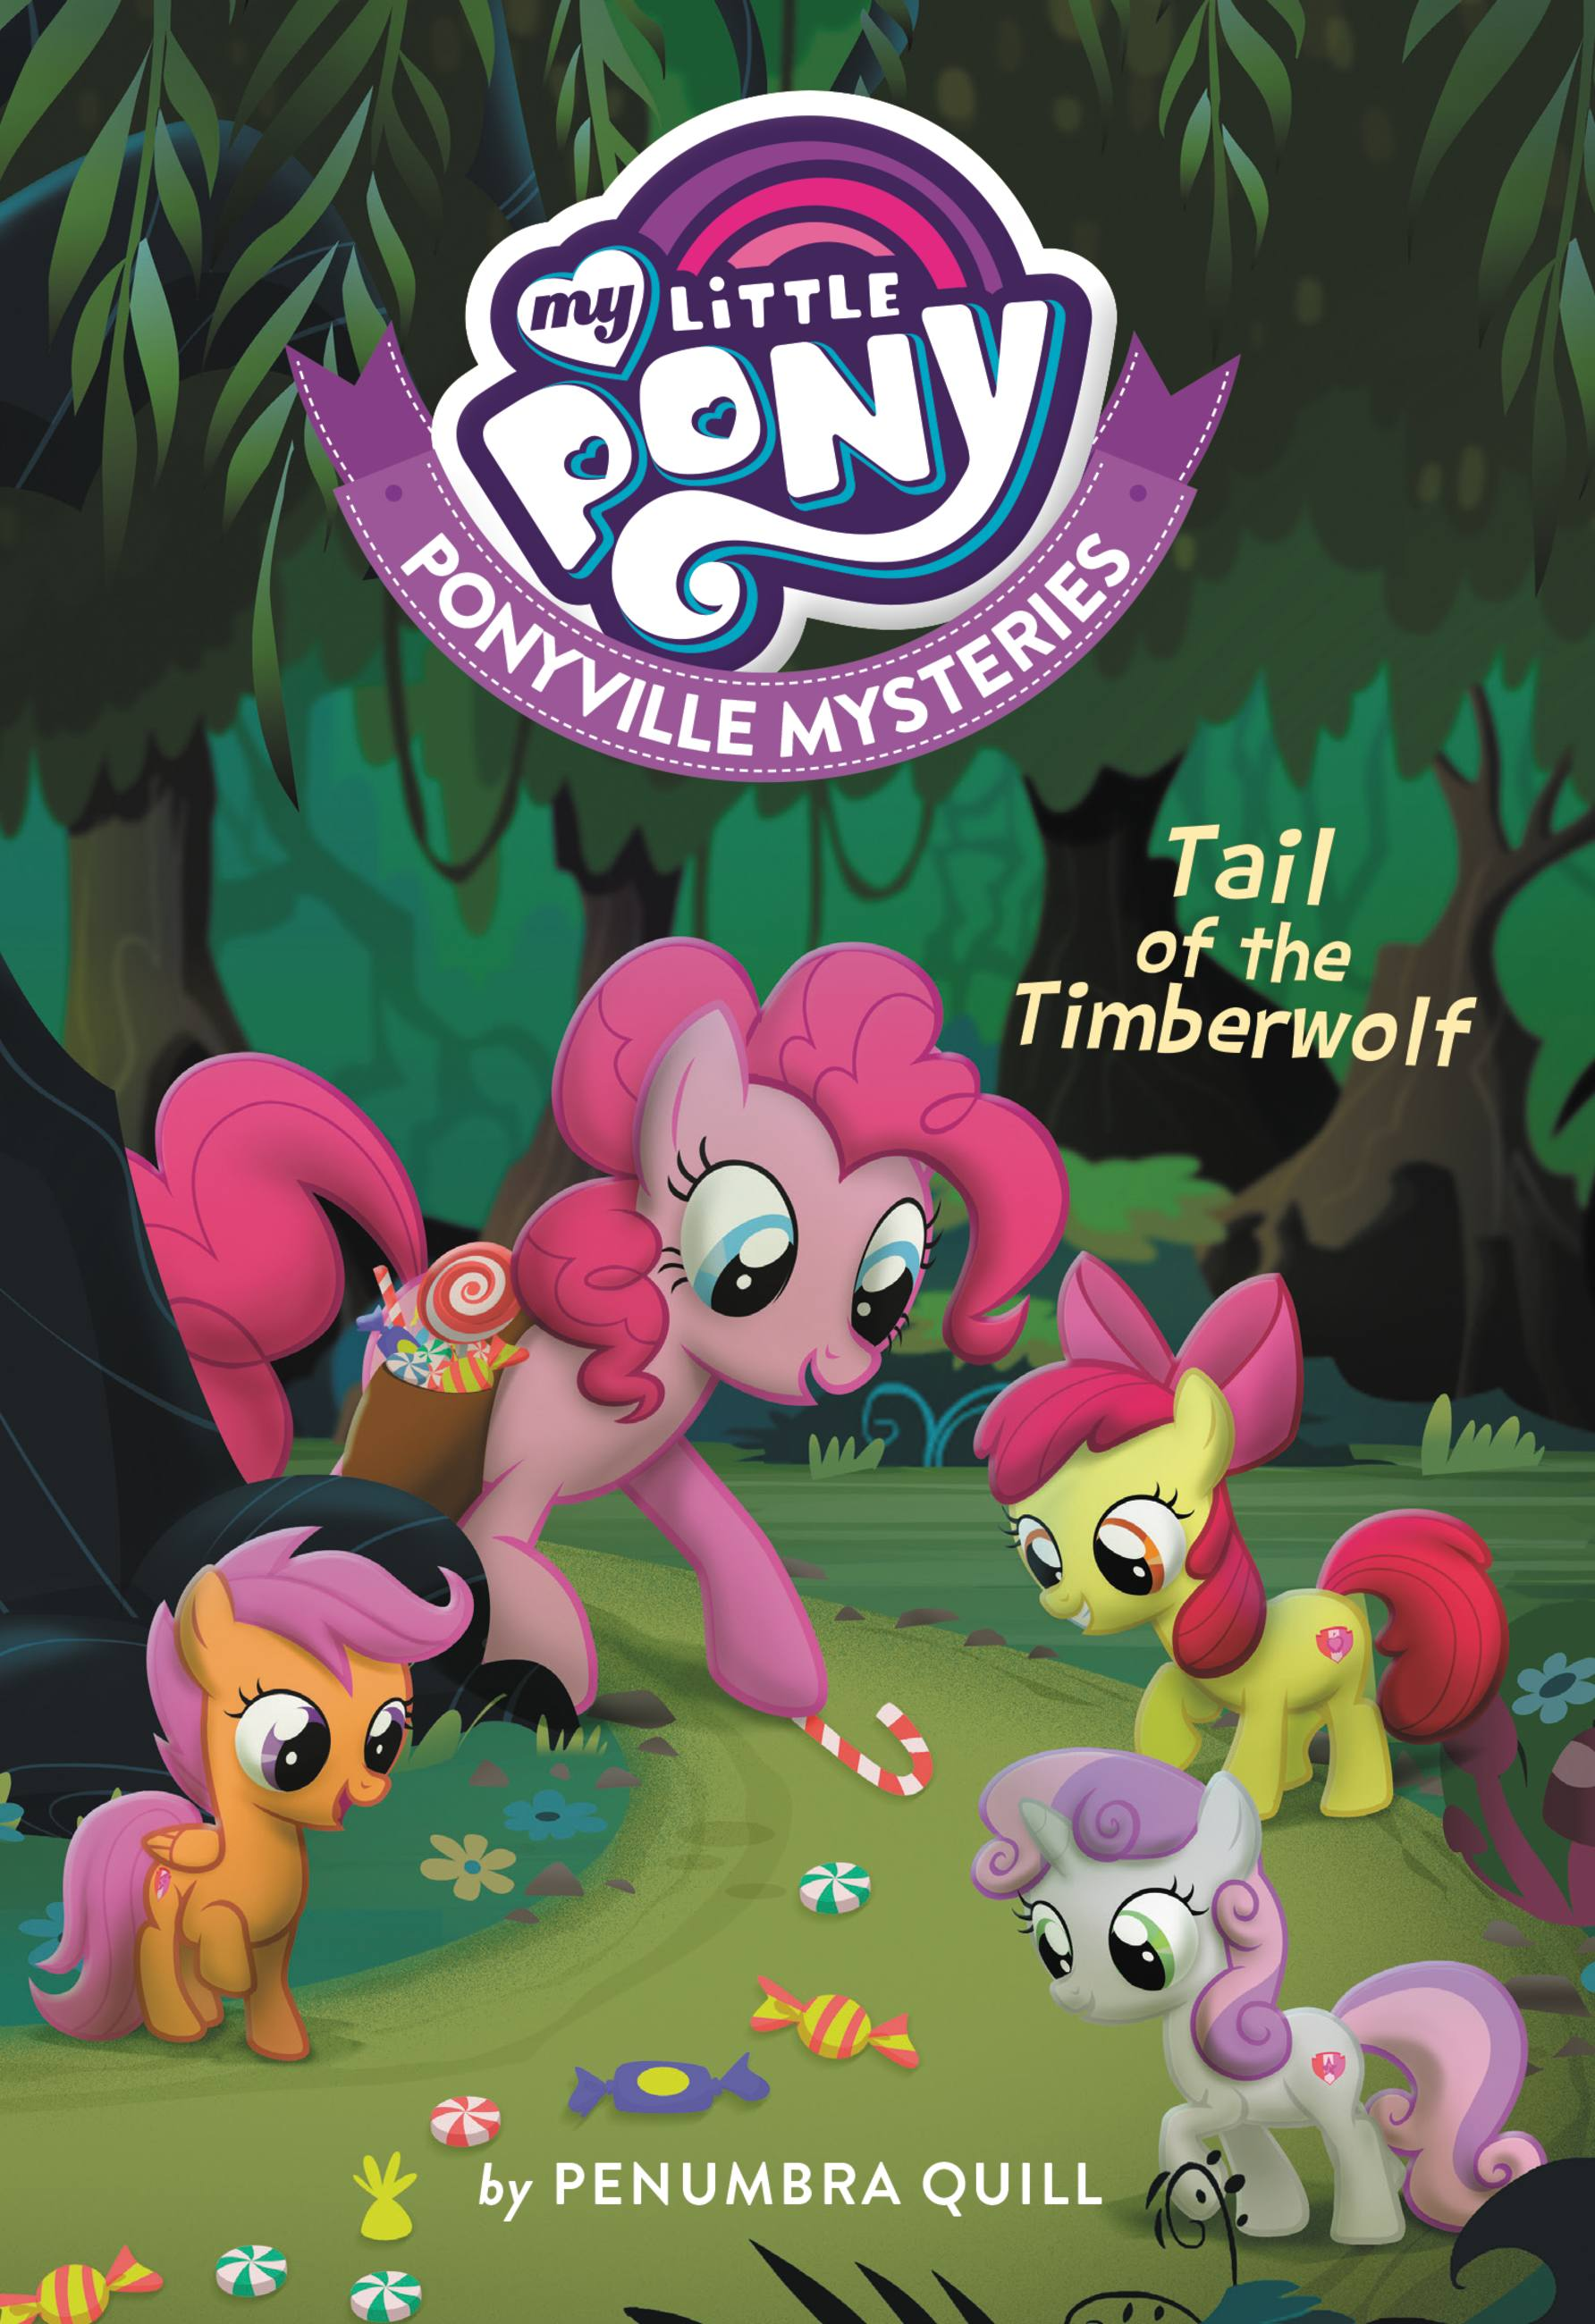 My Little Pony: Ponyville Mysteries: The Tail of the Timberwolf